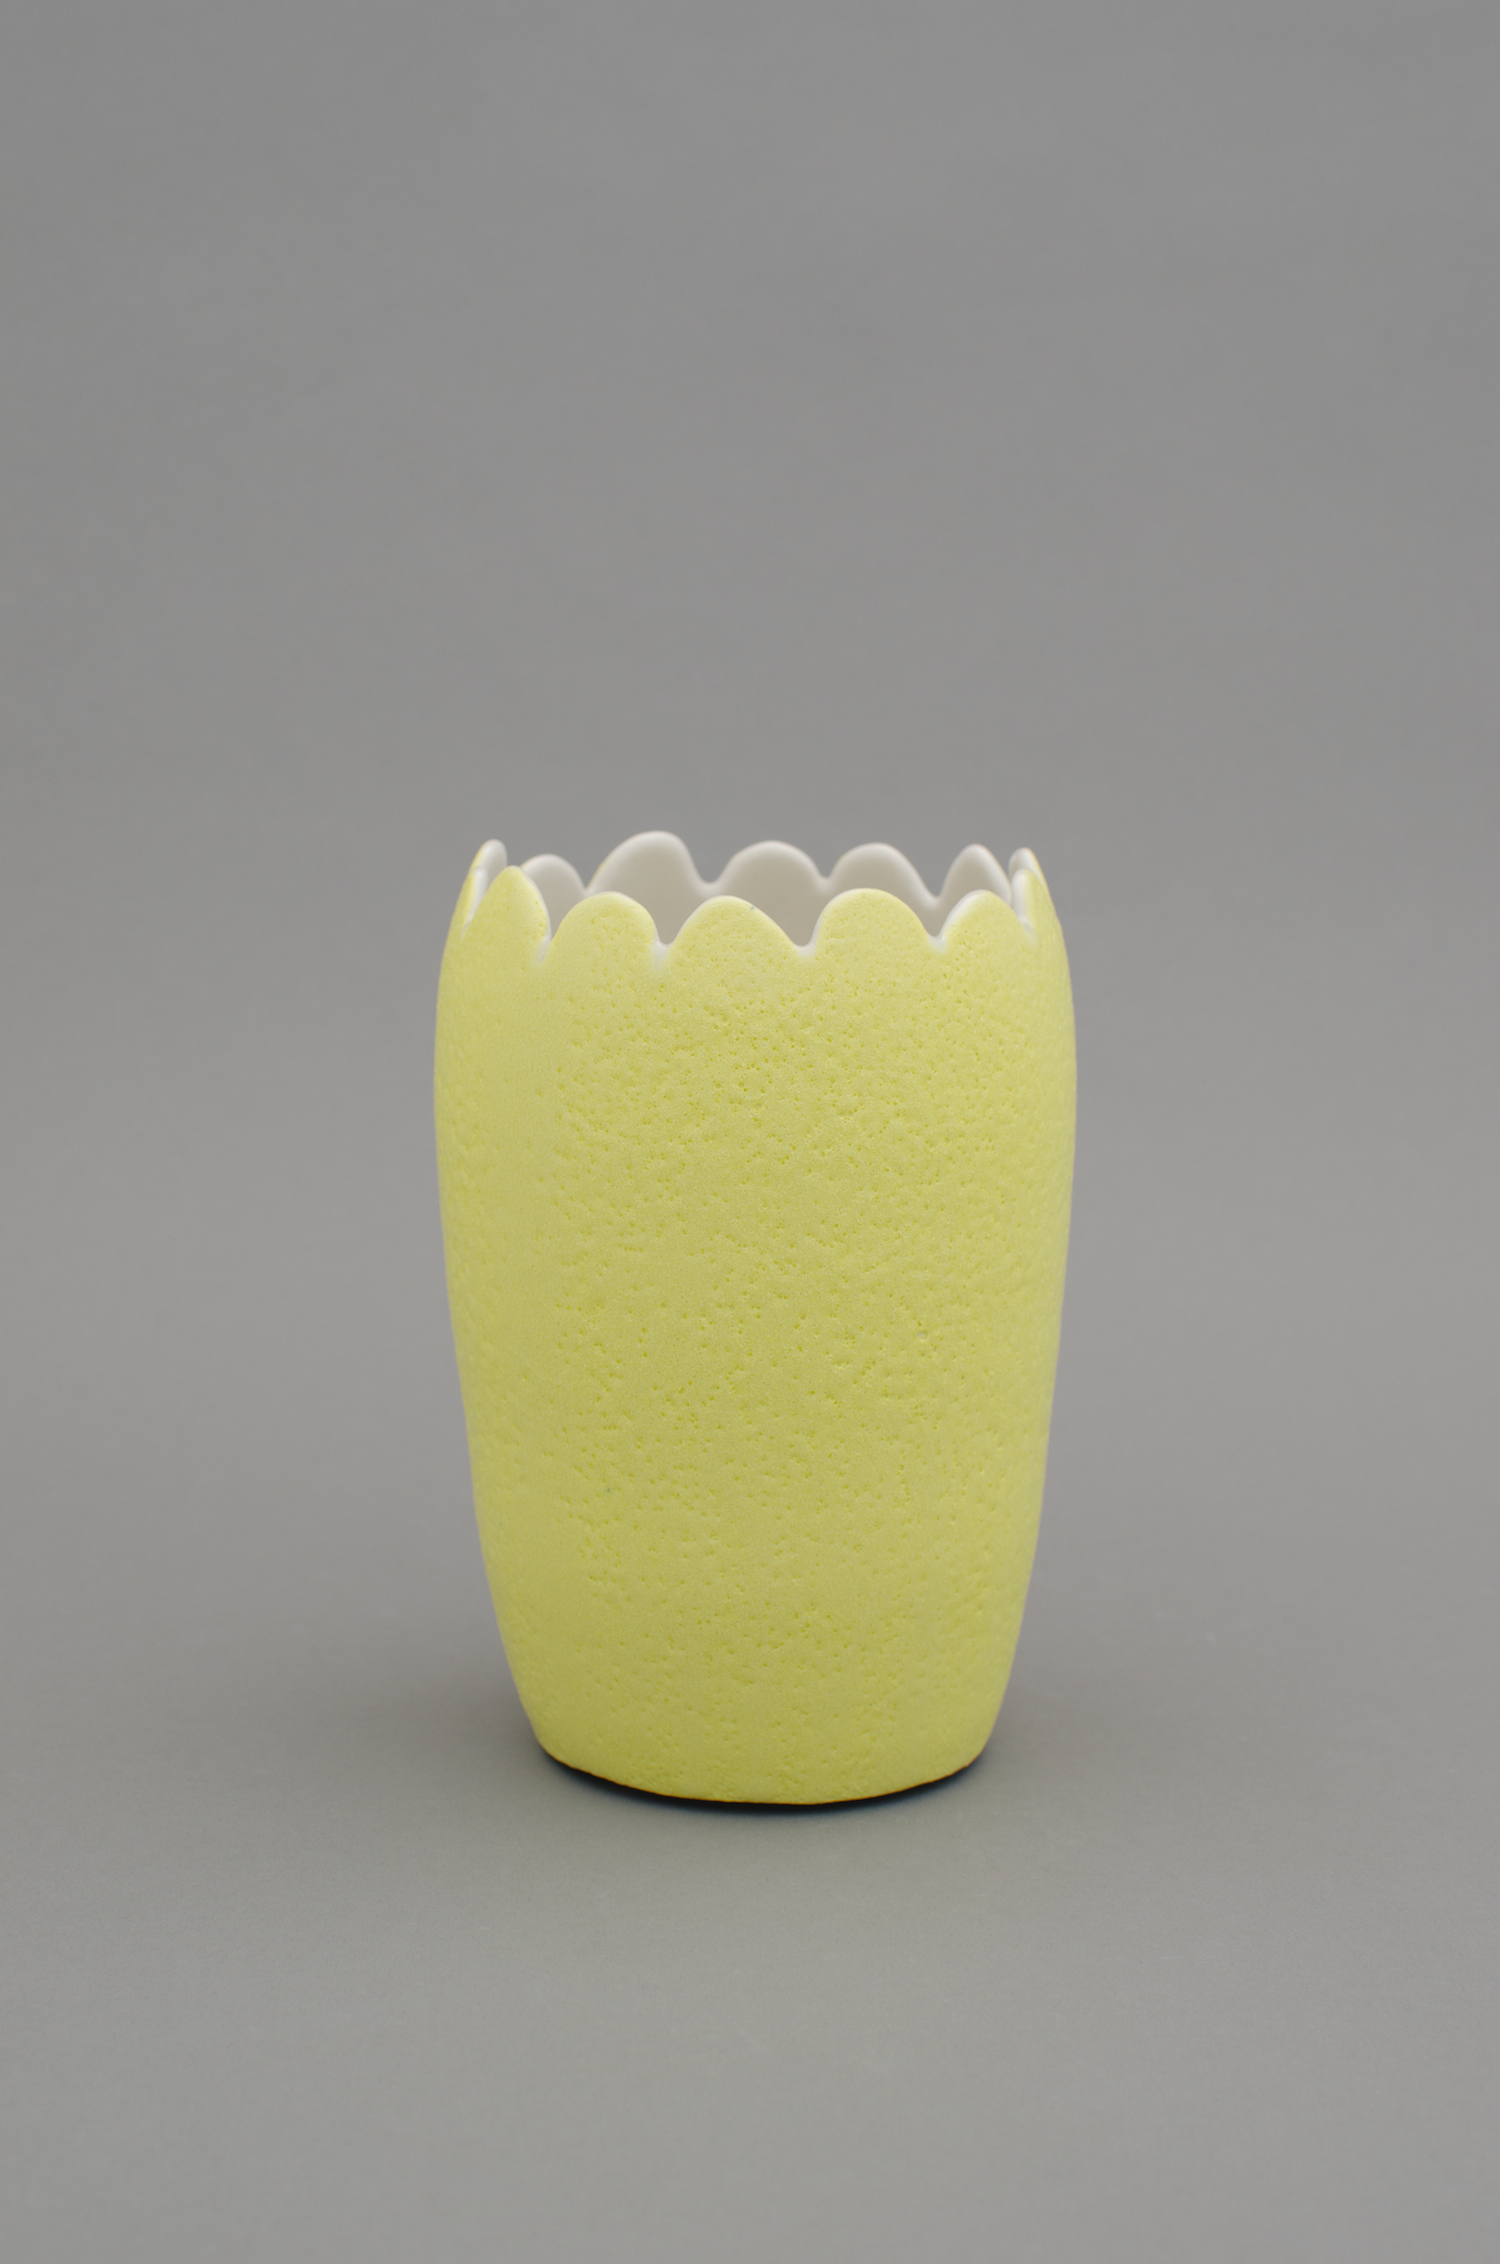 Shio Kusaka  Untitled (yellow 1)  2012 Porcelain 7 ¼h x 5w x 5d in SK377